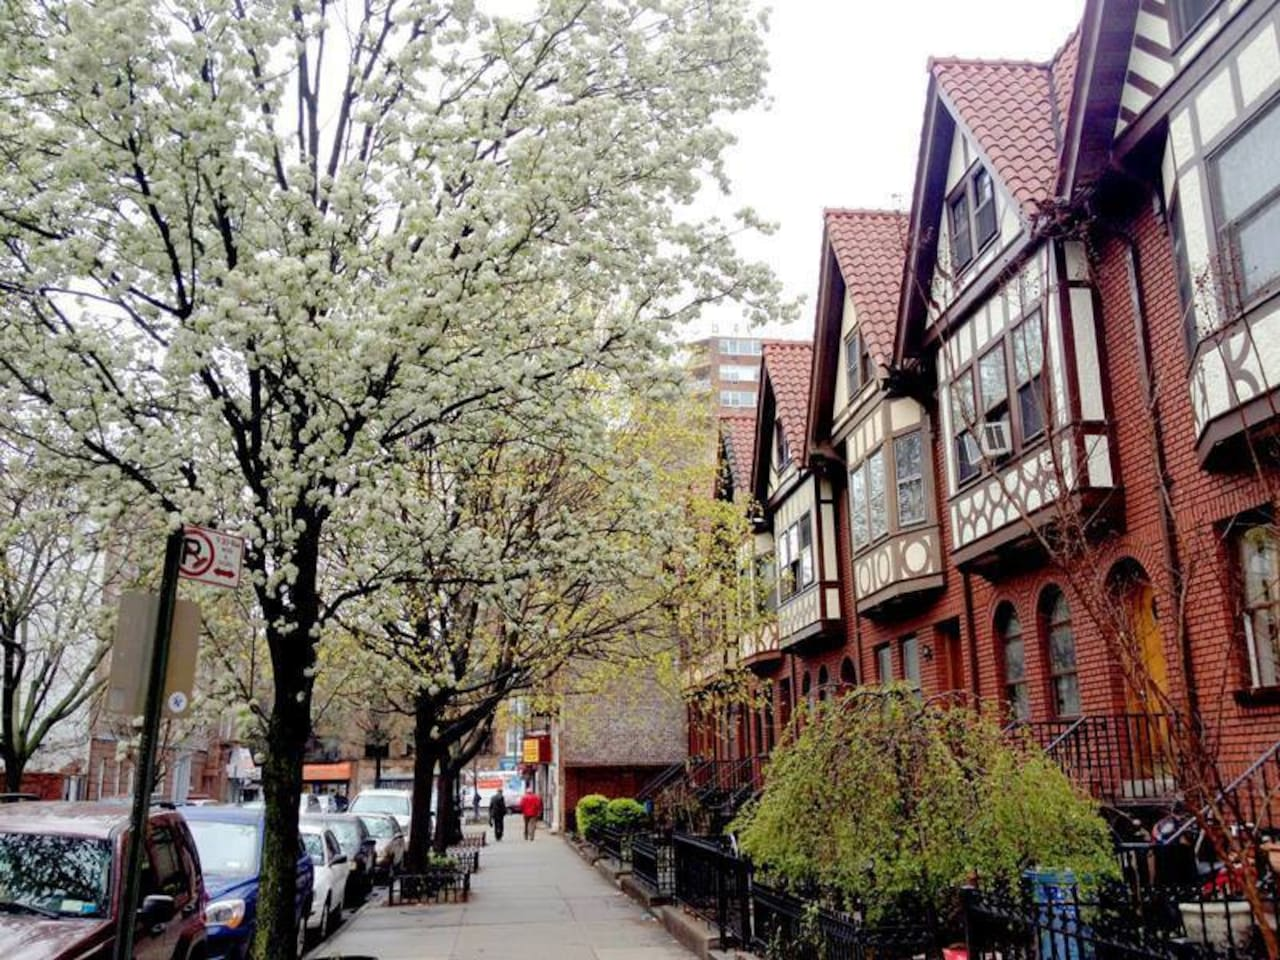 These iconic Tudor row houses were built in 1915, on what was formerly the horse stables for the surrounding brownstone houses  built two decades earlier, after the automobile rendered horses obsolete.